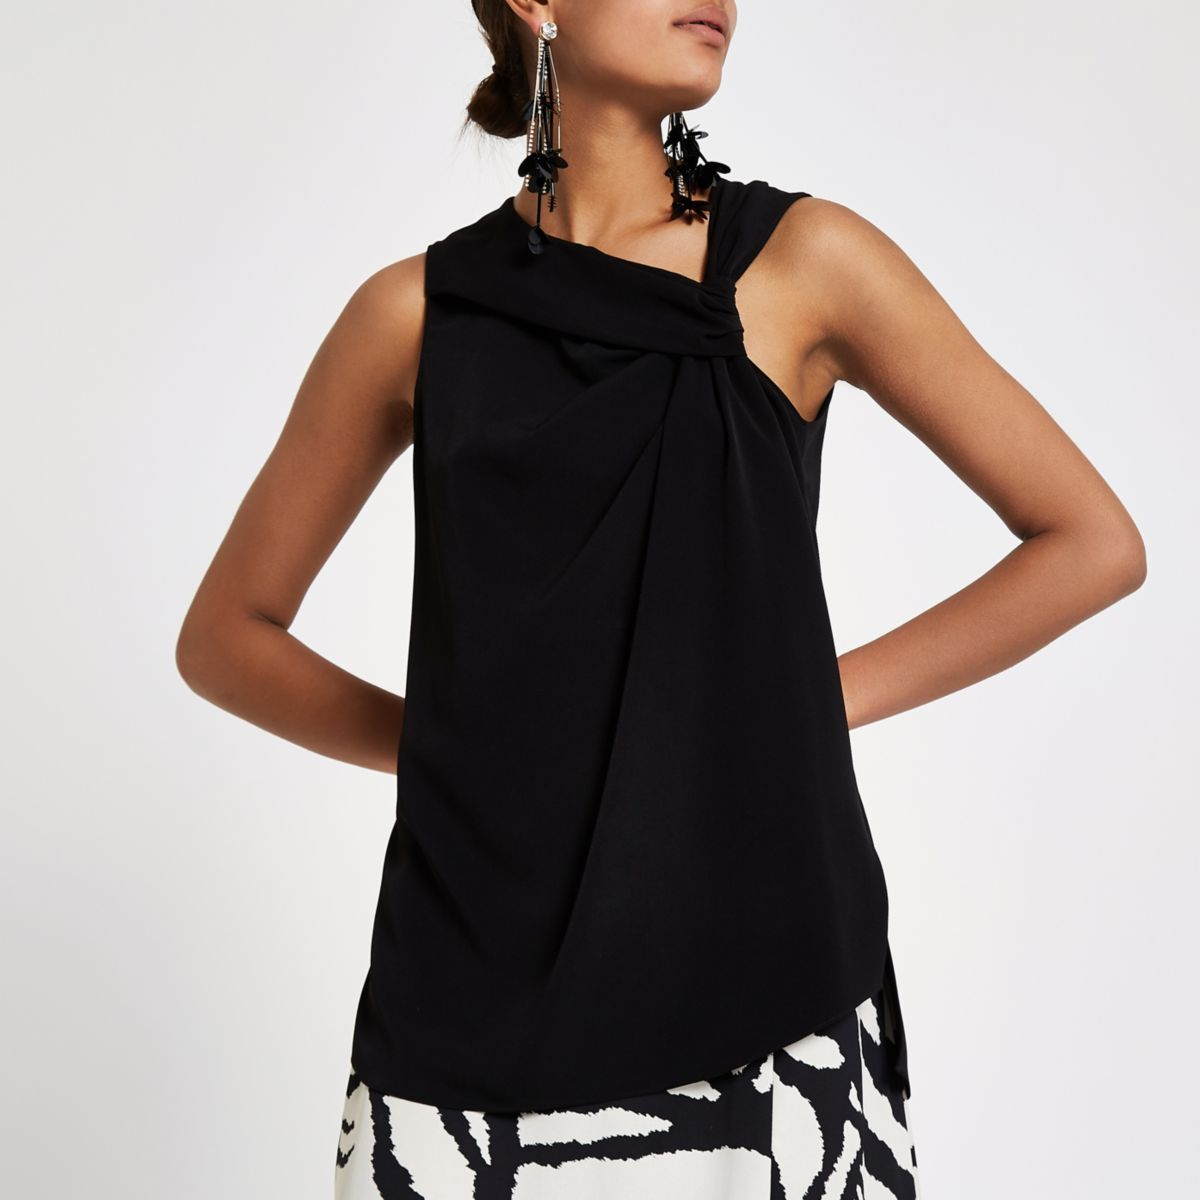 Black knot front sleeveless top 64adcf05a5763